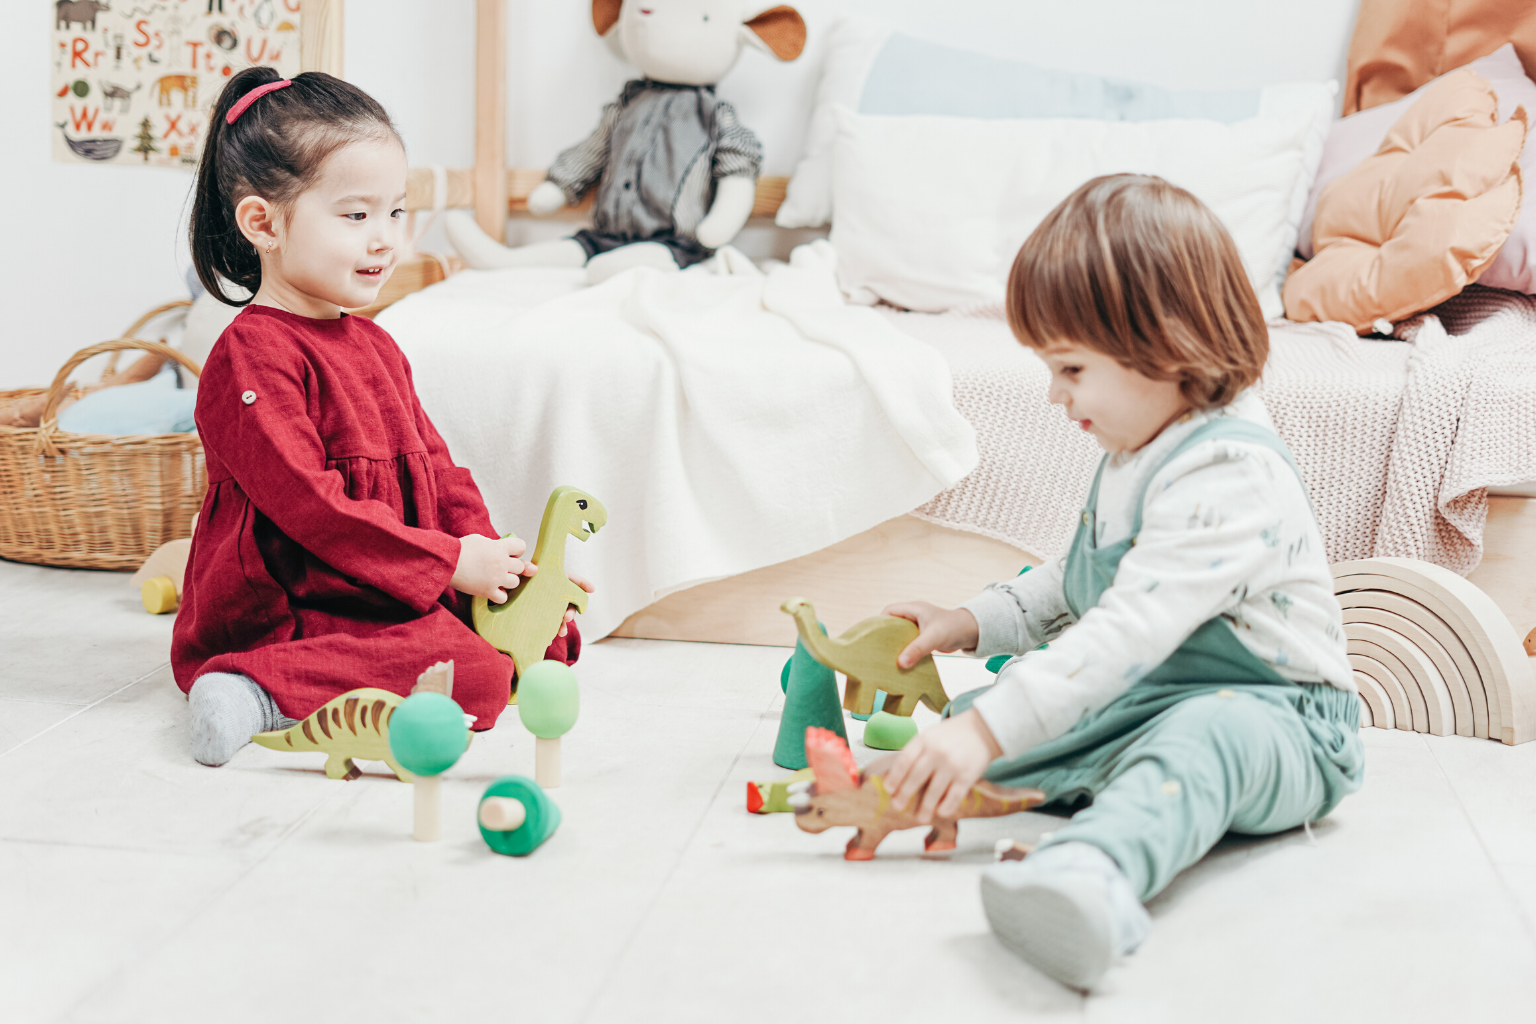 two children toddlers sitting down playing with toys